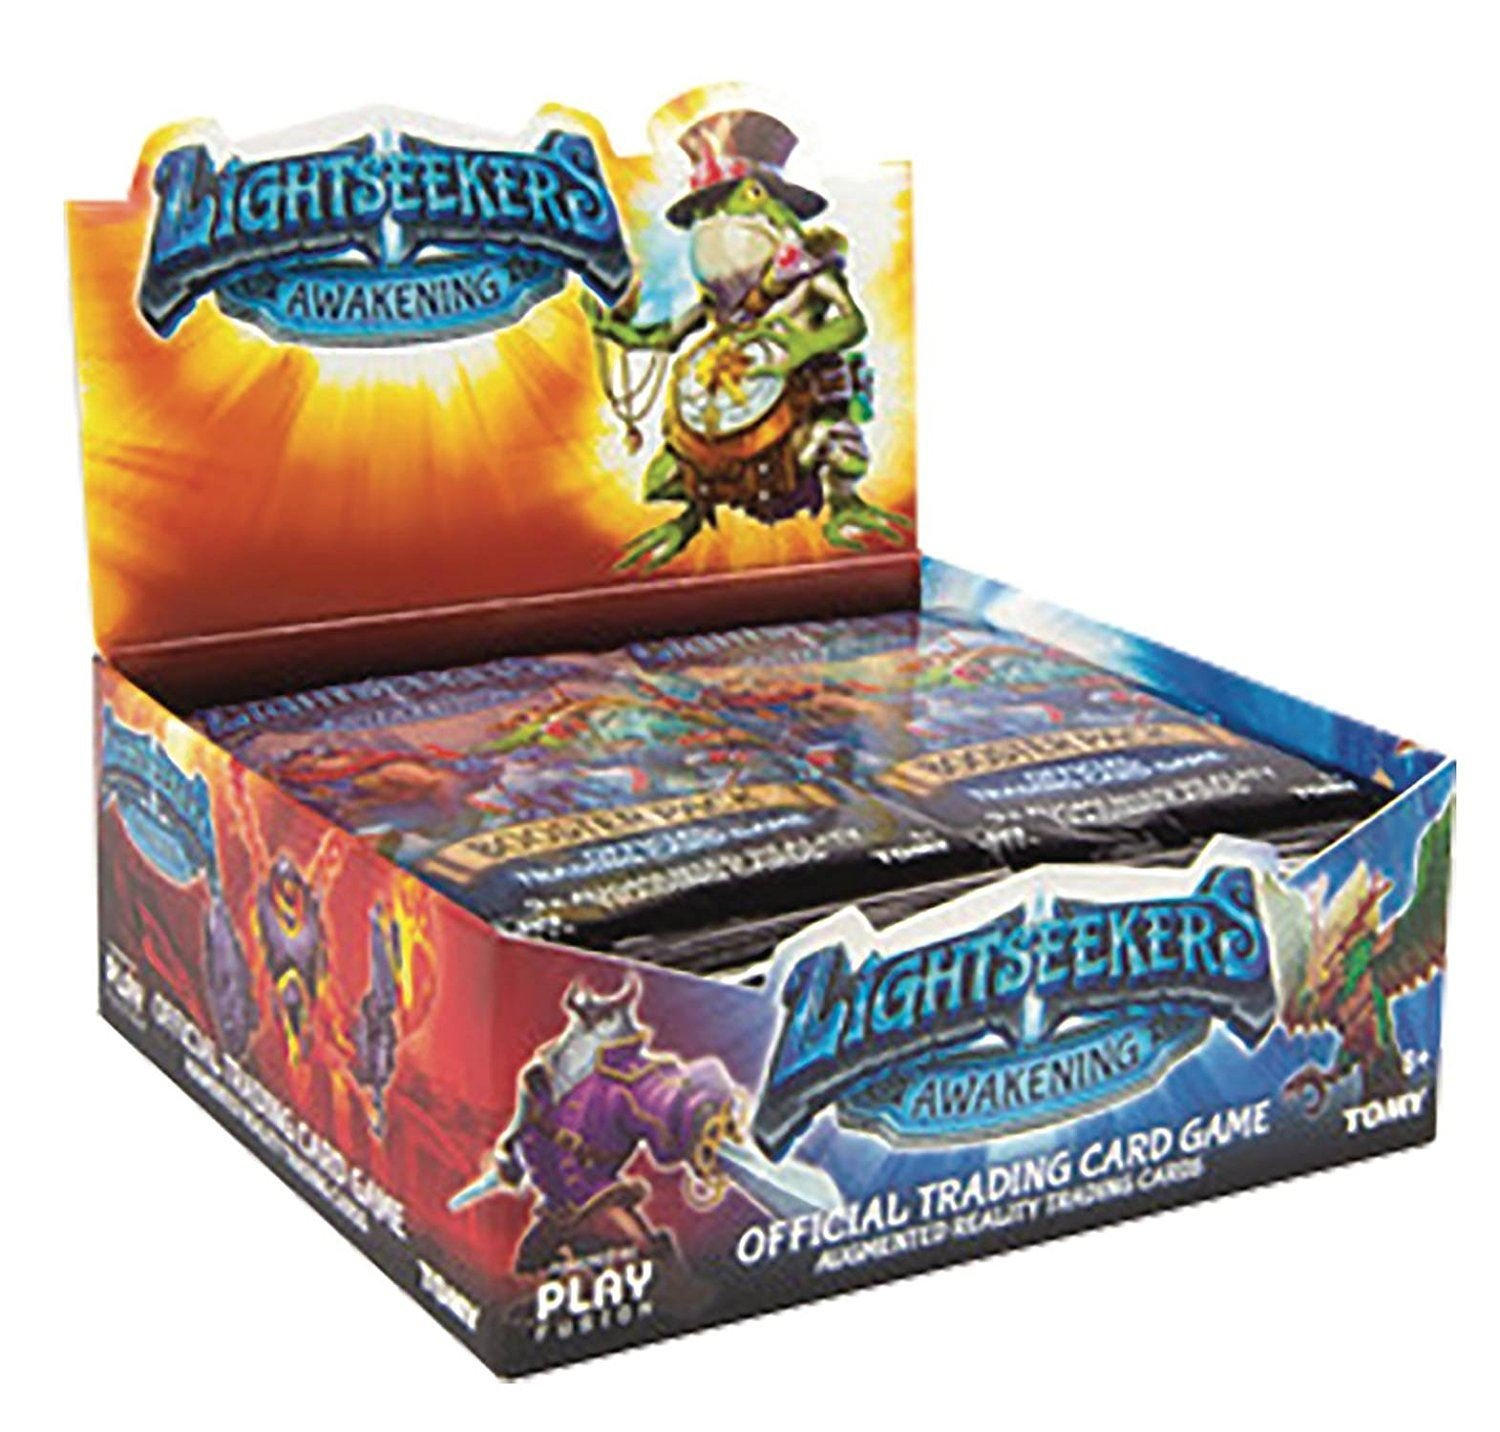 The Lightseekers TCG: Booster Display Box